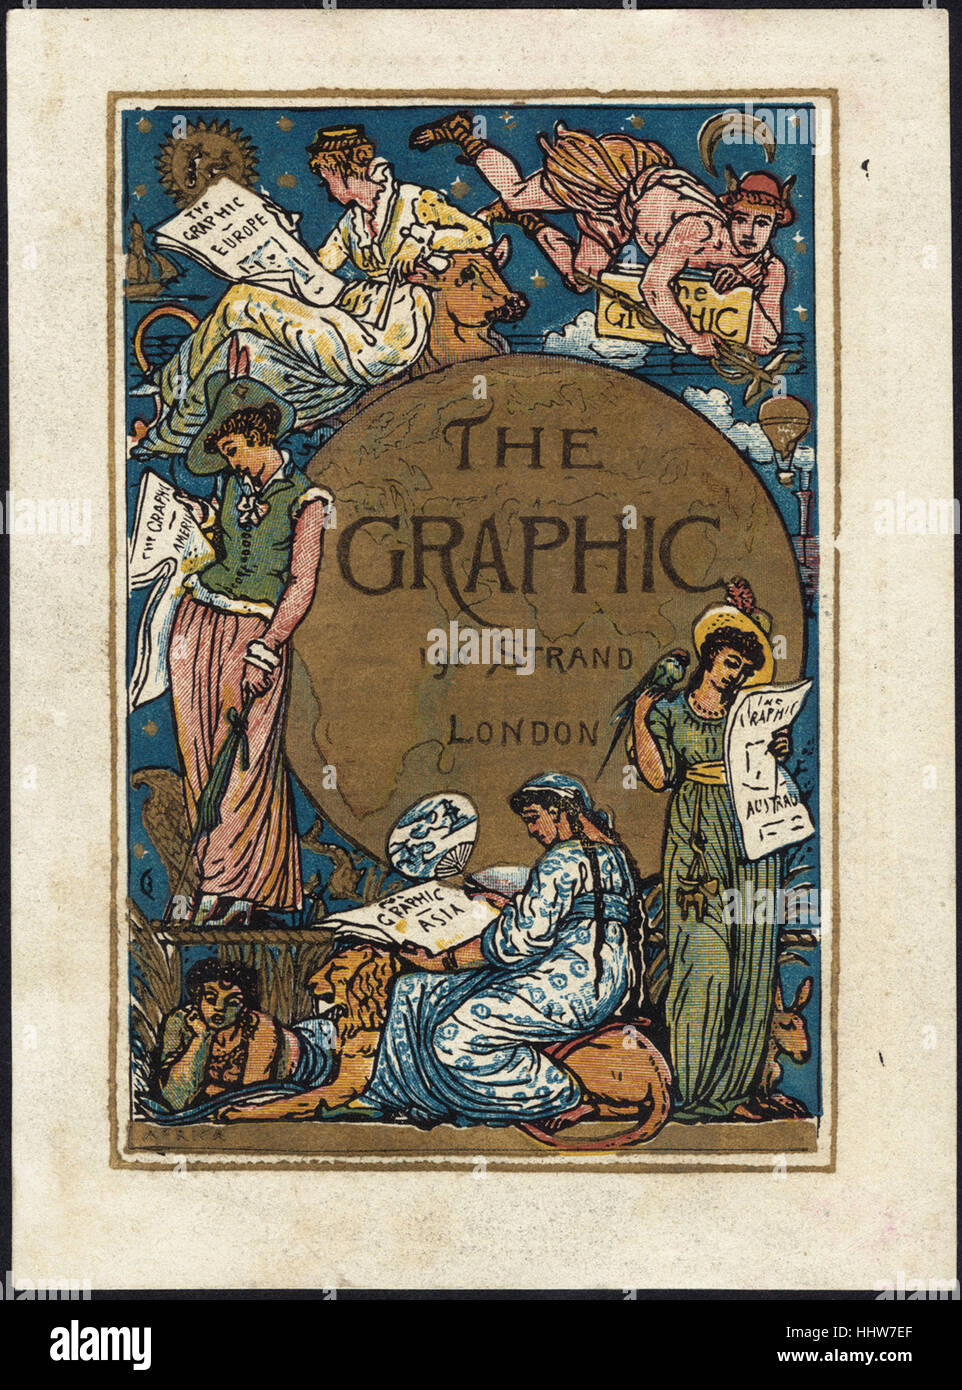 The Graphic, 190 Strand London [front]  - Leisure, Reading, and Travel Trade Cards - Stock Image